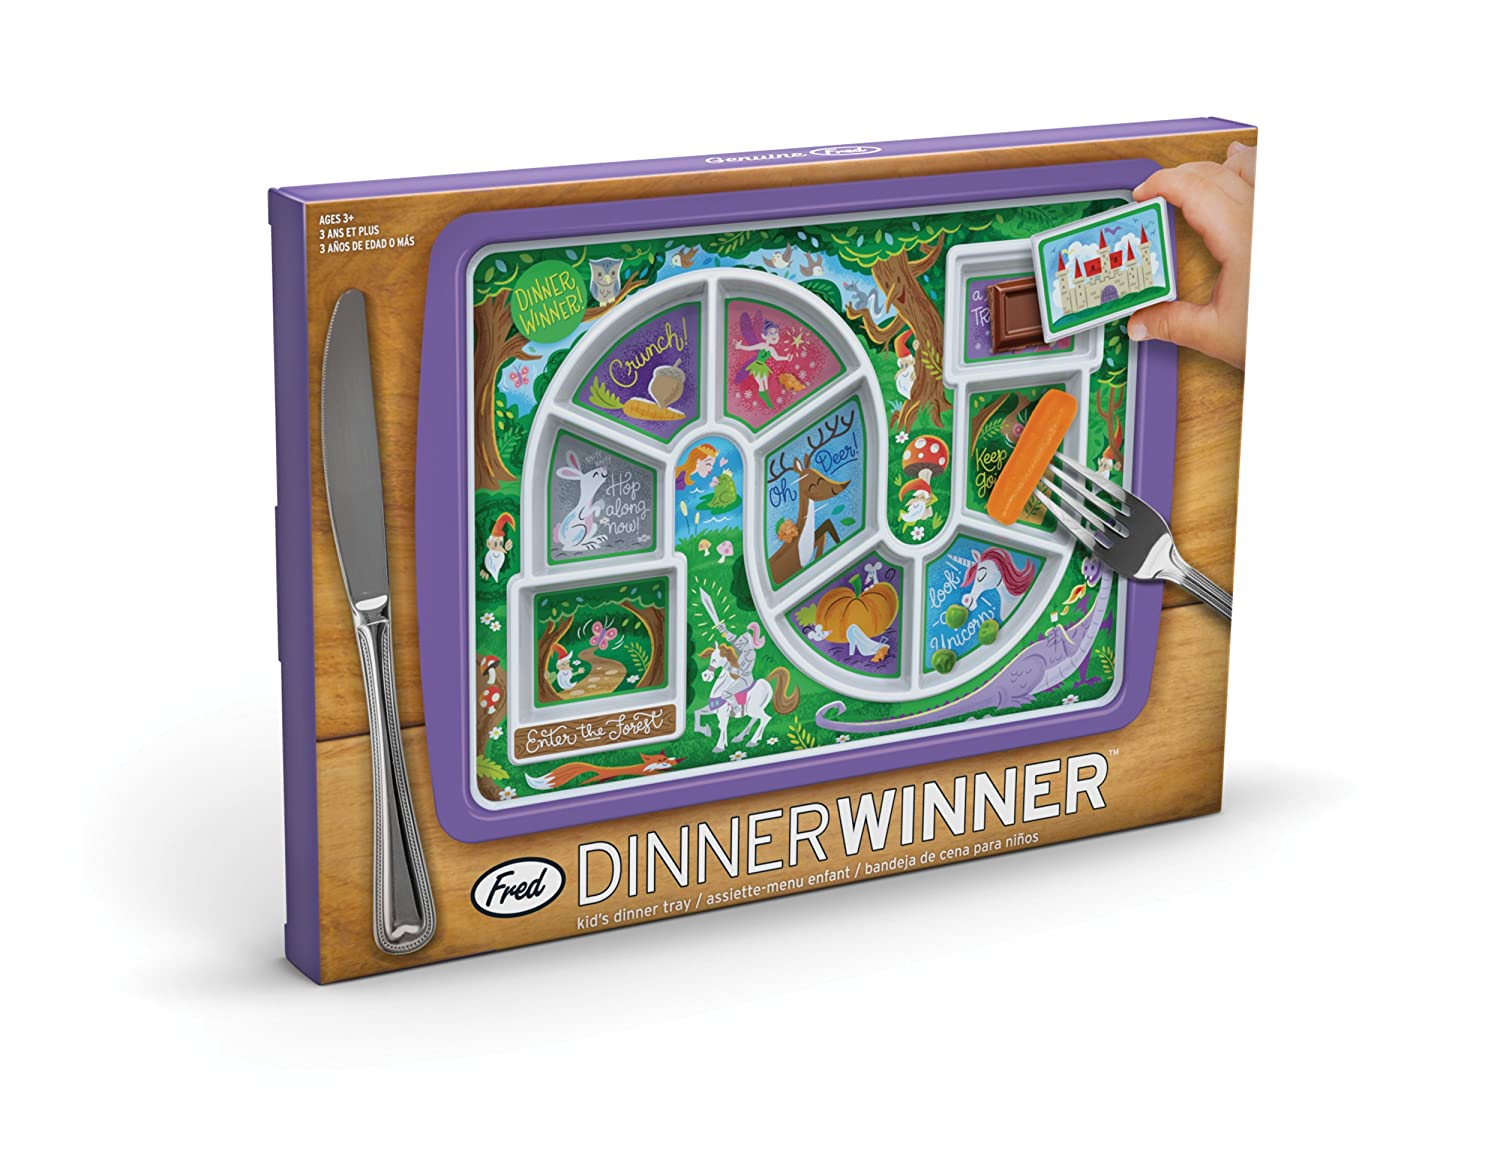 Amazon Com Fred Dinner Winner Kids Dinner Tray Enchanted Forest